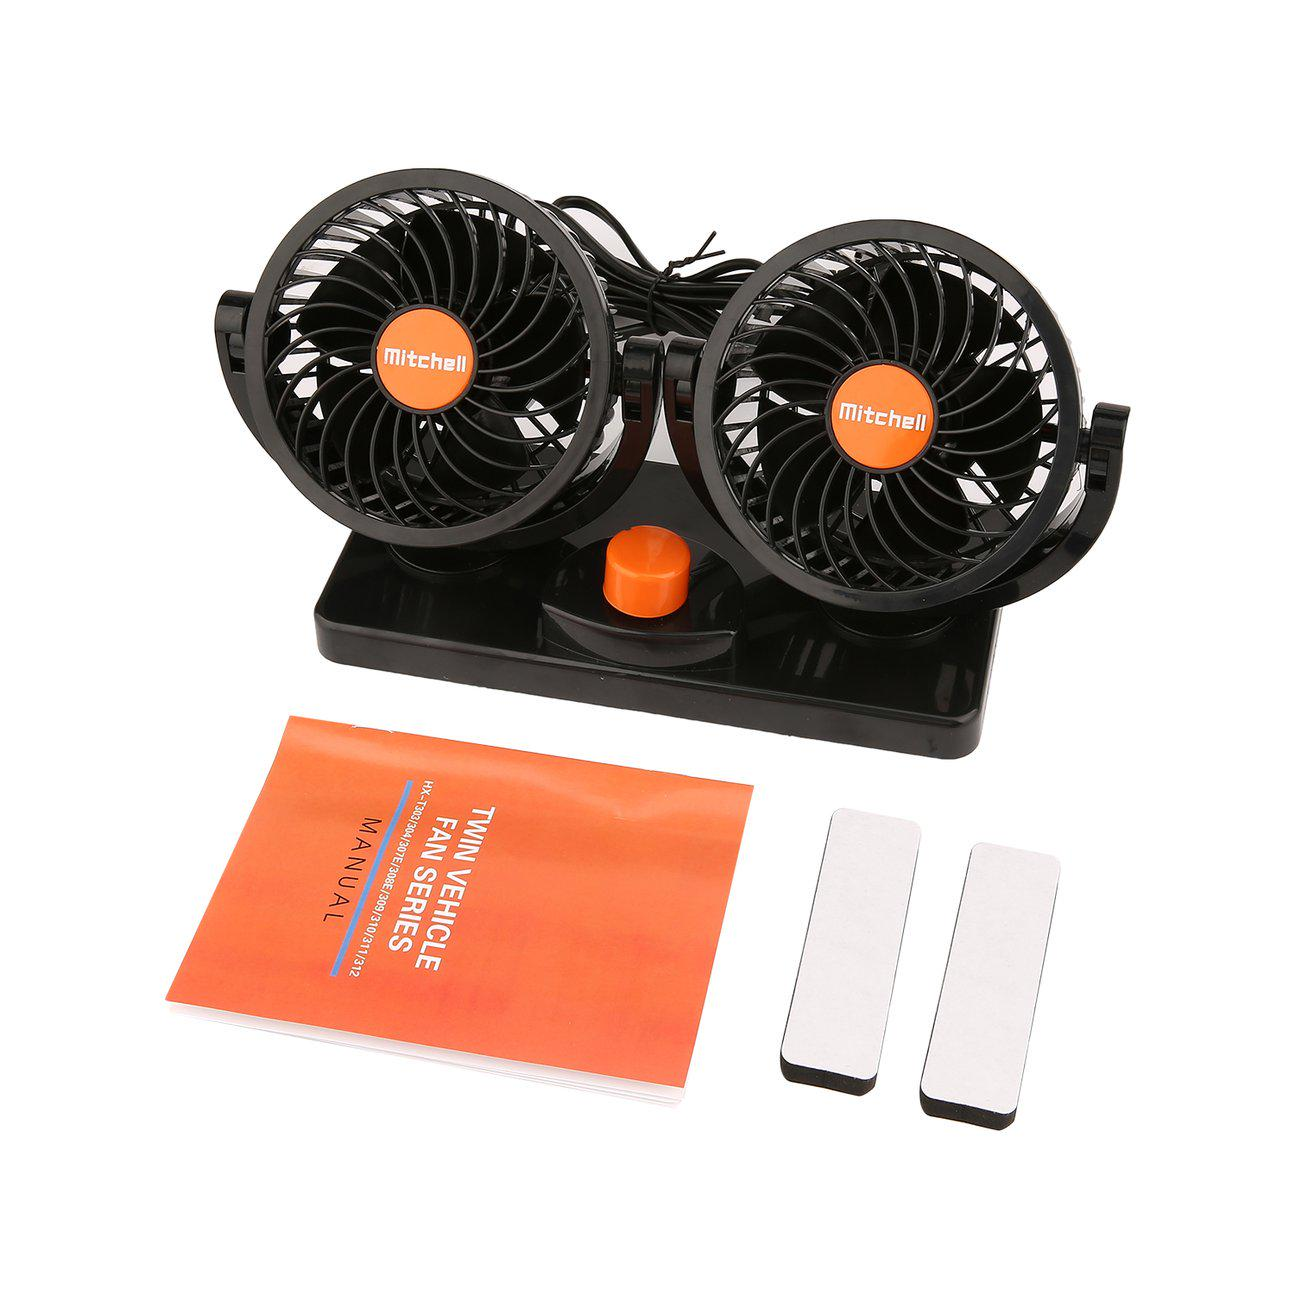 Image 5 - 24V Car Fan Ventilador Air Conditioning Double Head Auto Air Cooler Cars Ventilator Double Motor For Car 360 Degree Rotatable 29-in Cables, Adapters & Sockets from Automobiles & Motorcycles